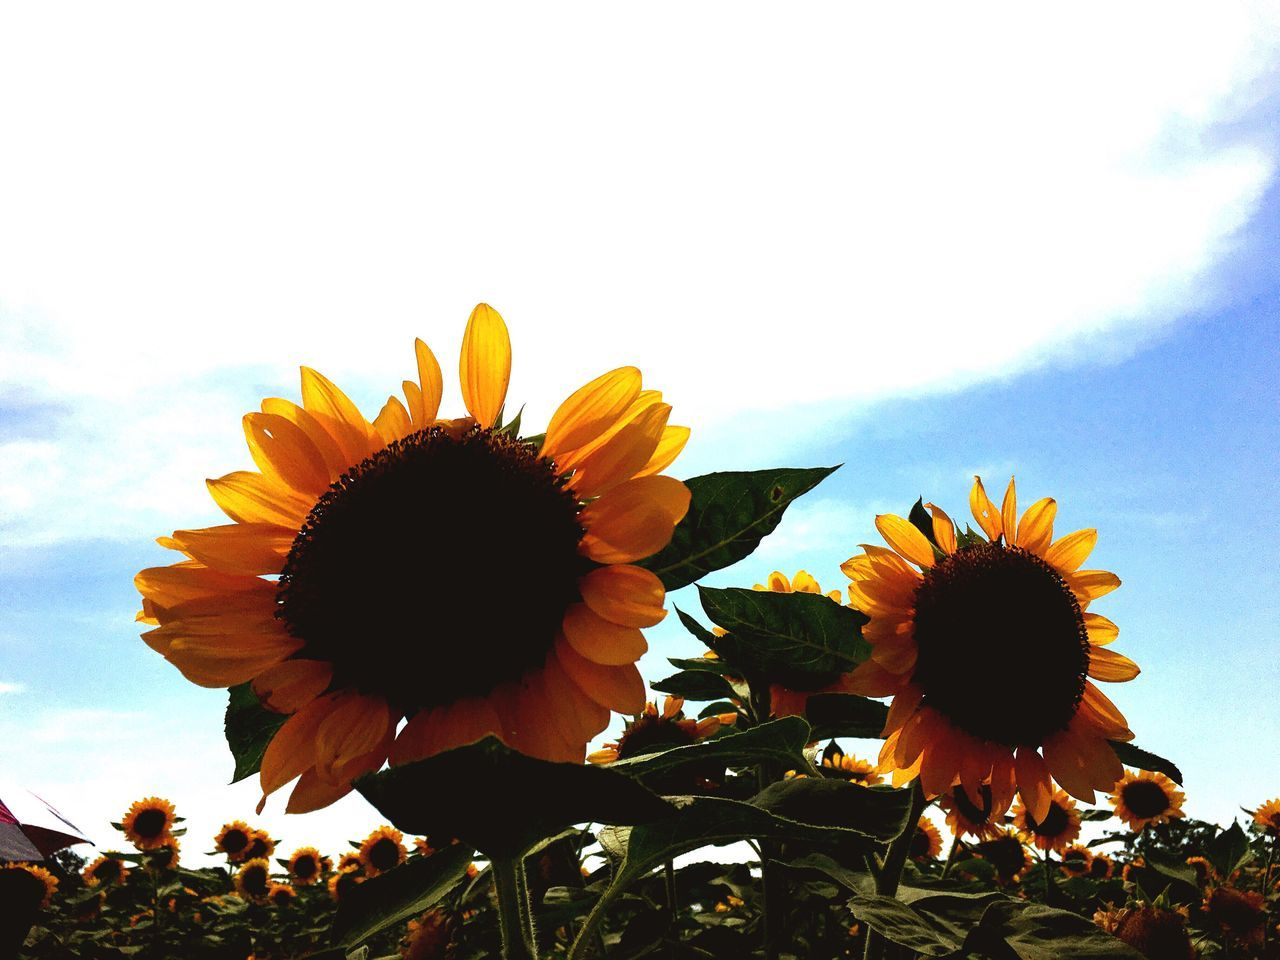 Flower Nature Beauty In Nature Petal Growth Flower Head Fragility Plant Freshness Sky Sunflower Outdoors Blooming Day Close-up Field Cloud - Sky No People Yellow Black-eyed Susan Eyeem Philippines